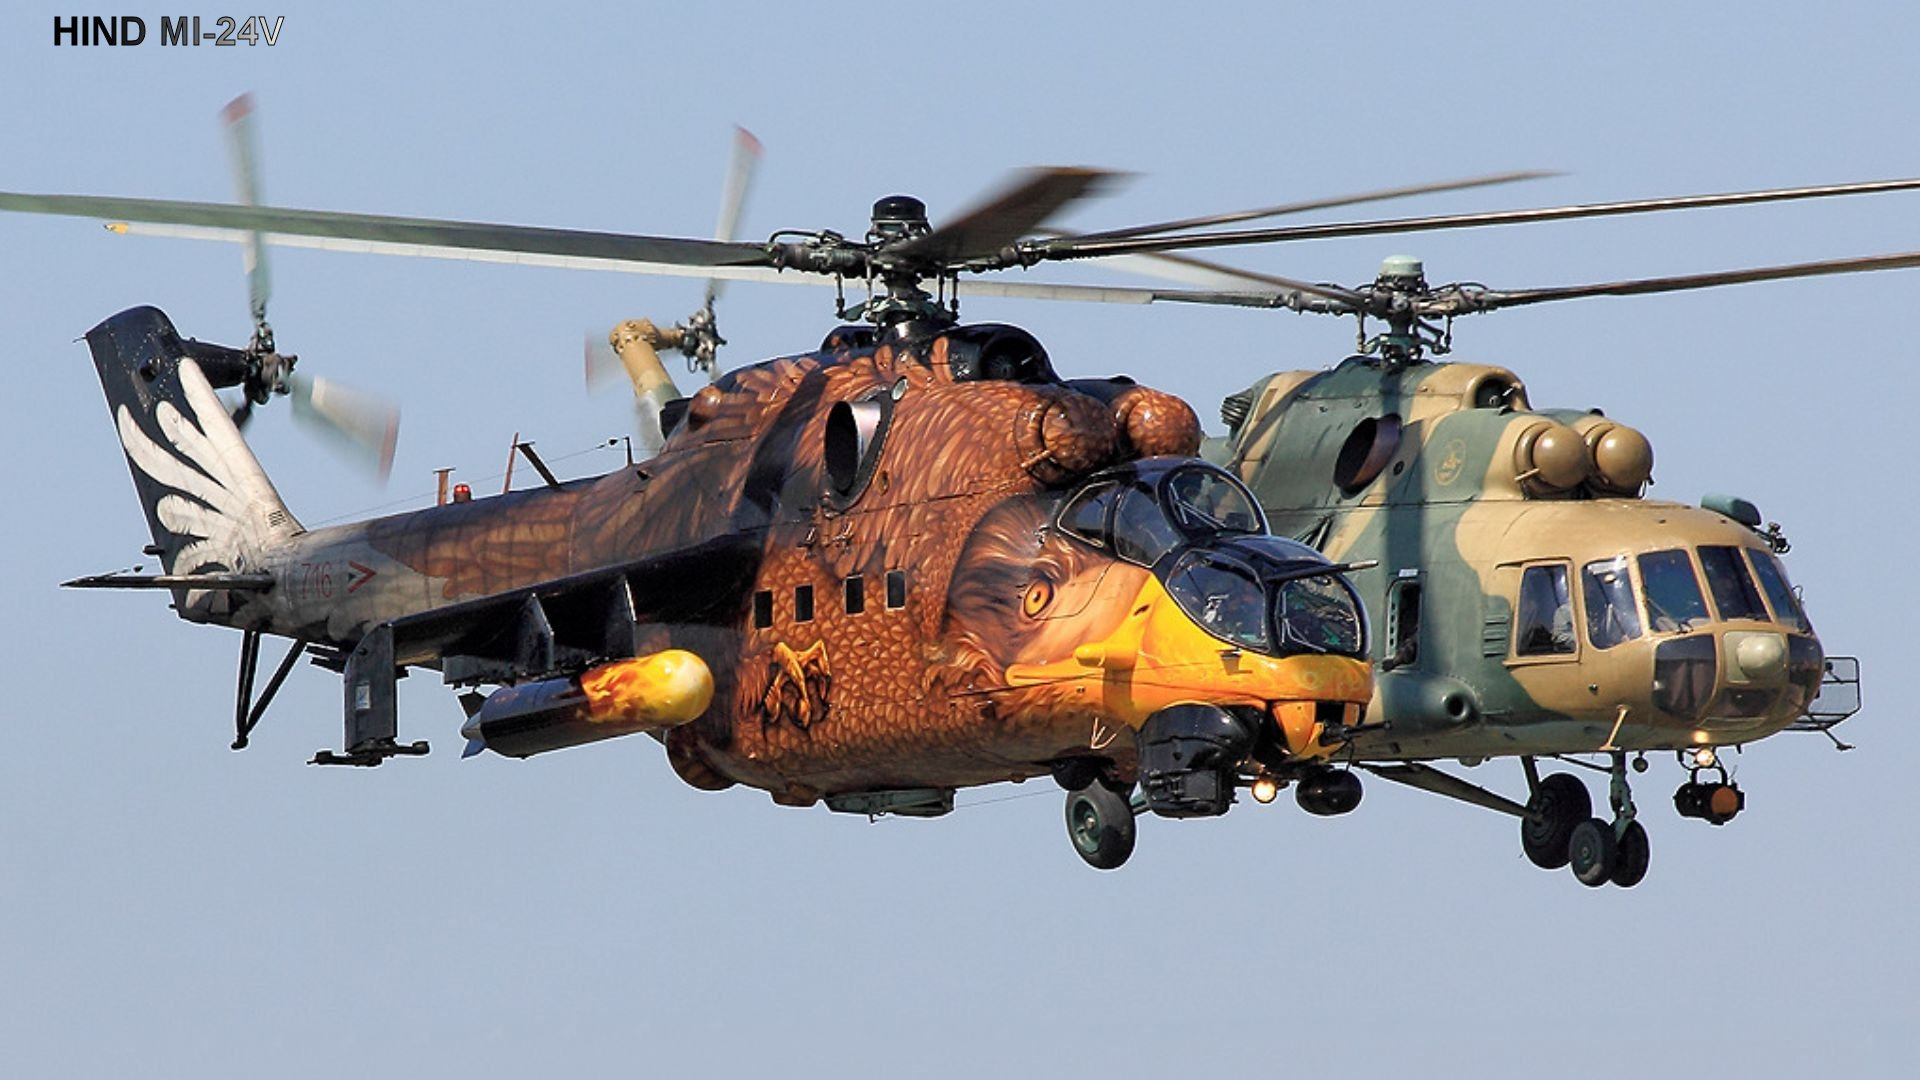 Rambo 3 Elicottero : Mi hind gunship russian russia military weapon